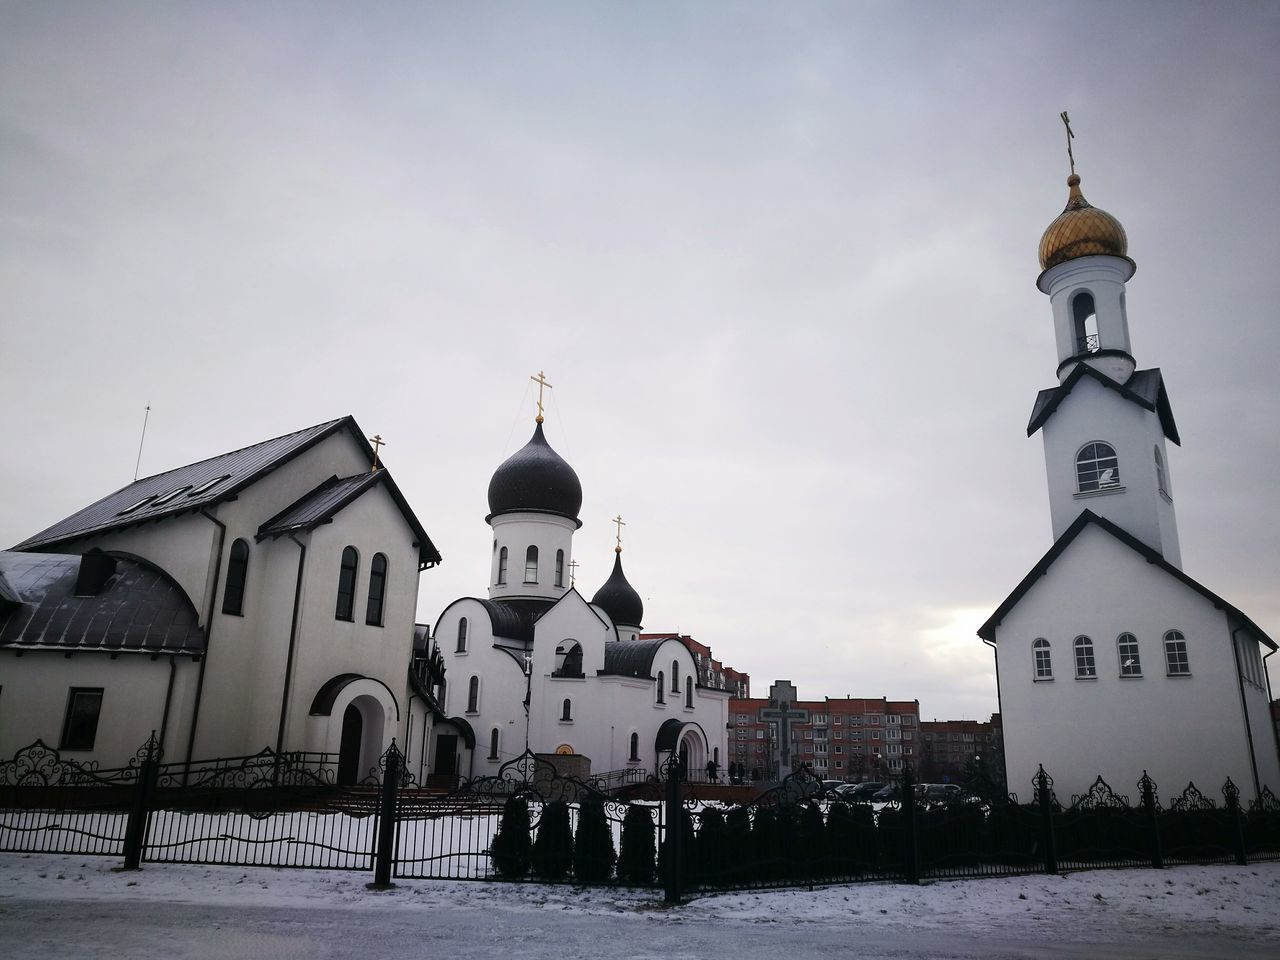 Slavian chirch, Klaipeda Religion Architecture Winter Spirituality Building Exterior Travel Destinations Place Of Worship Cold Temperature Snow Outdoors Built Structure Dome City Snowing Sky No People Night